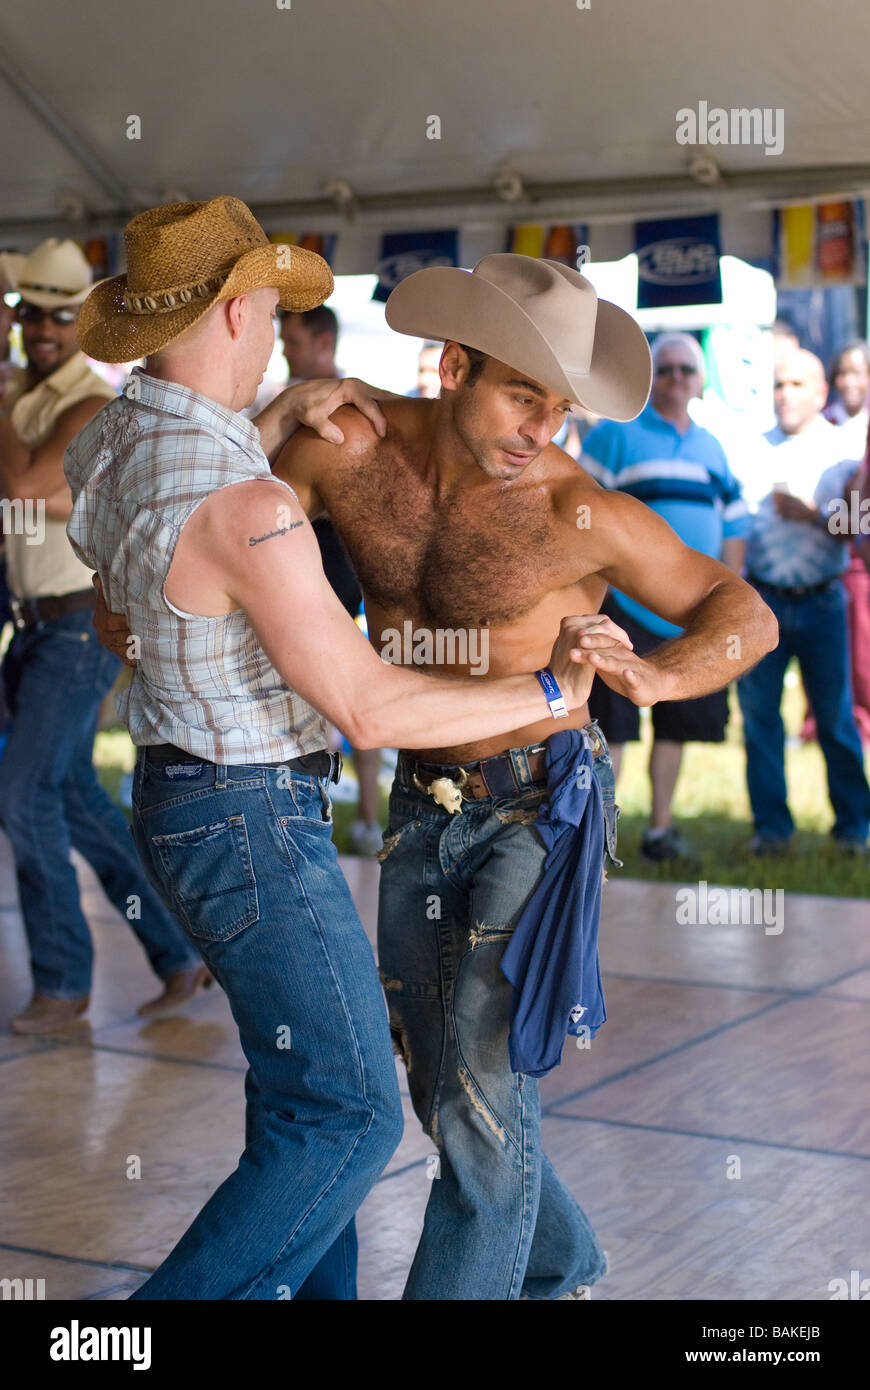 from Harold devon gay rodeo song